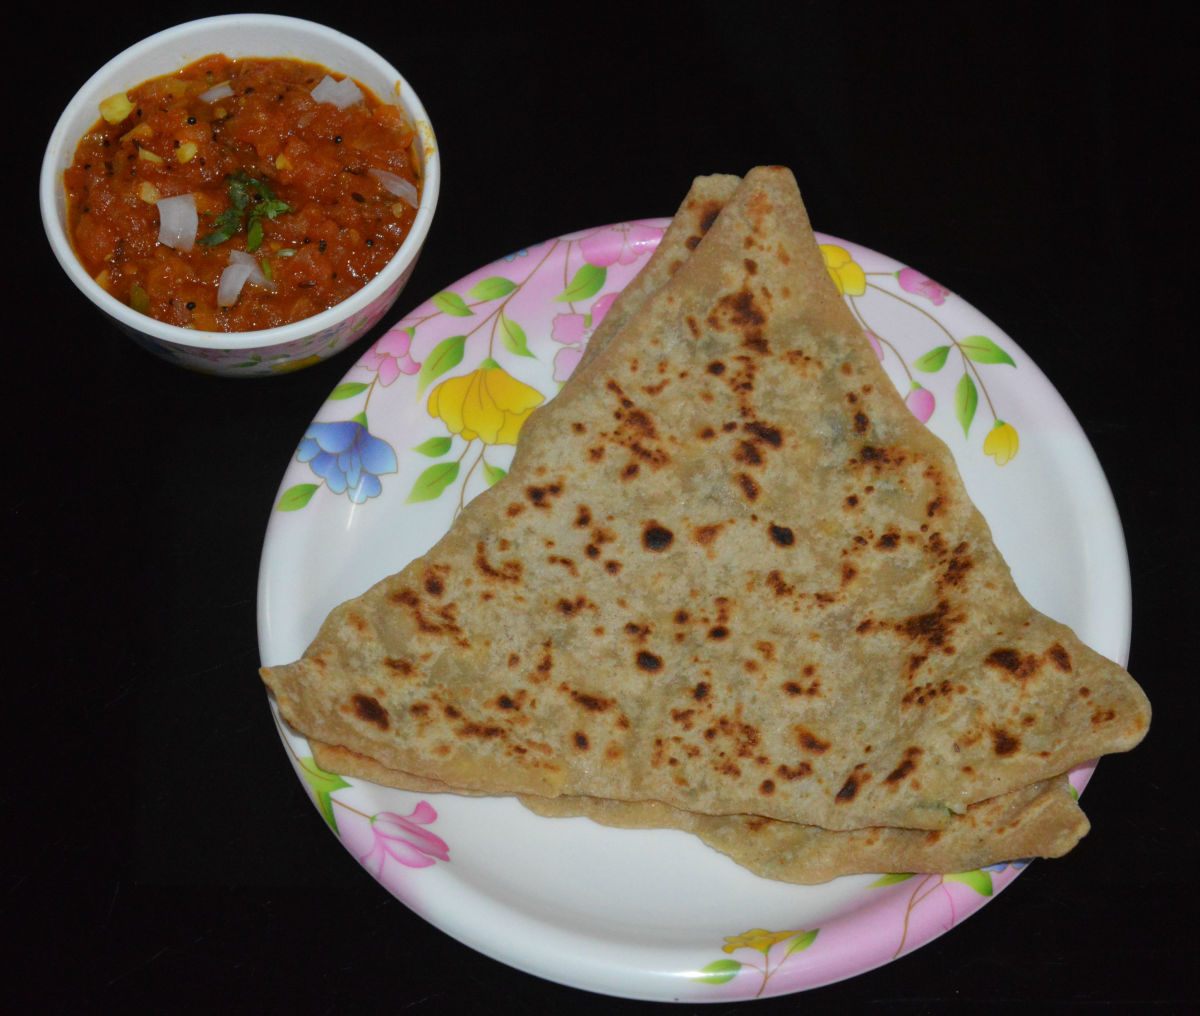 Serve with hot parathas or chapati. Enjoy!